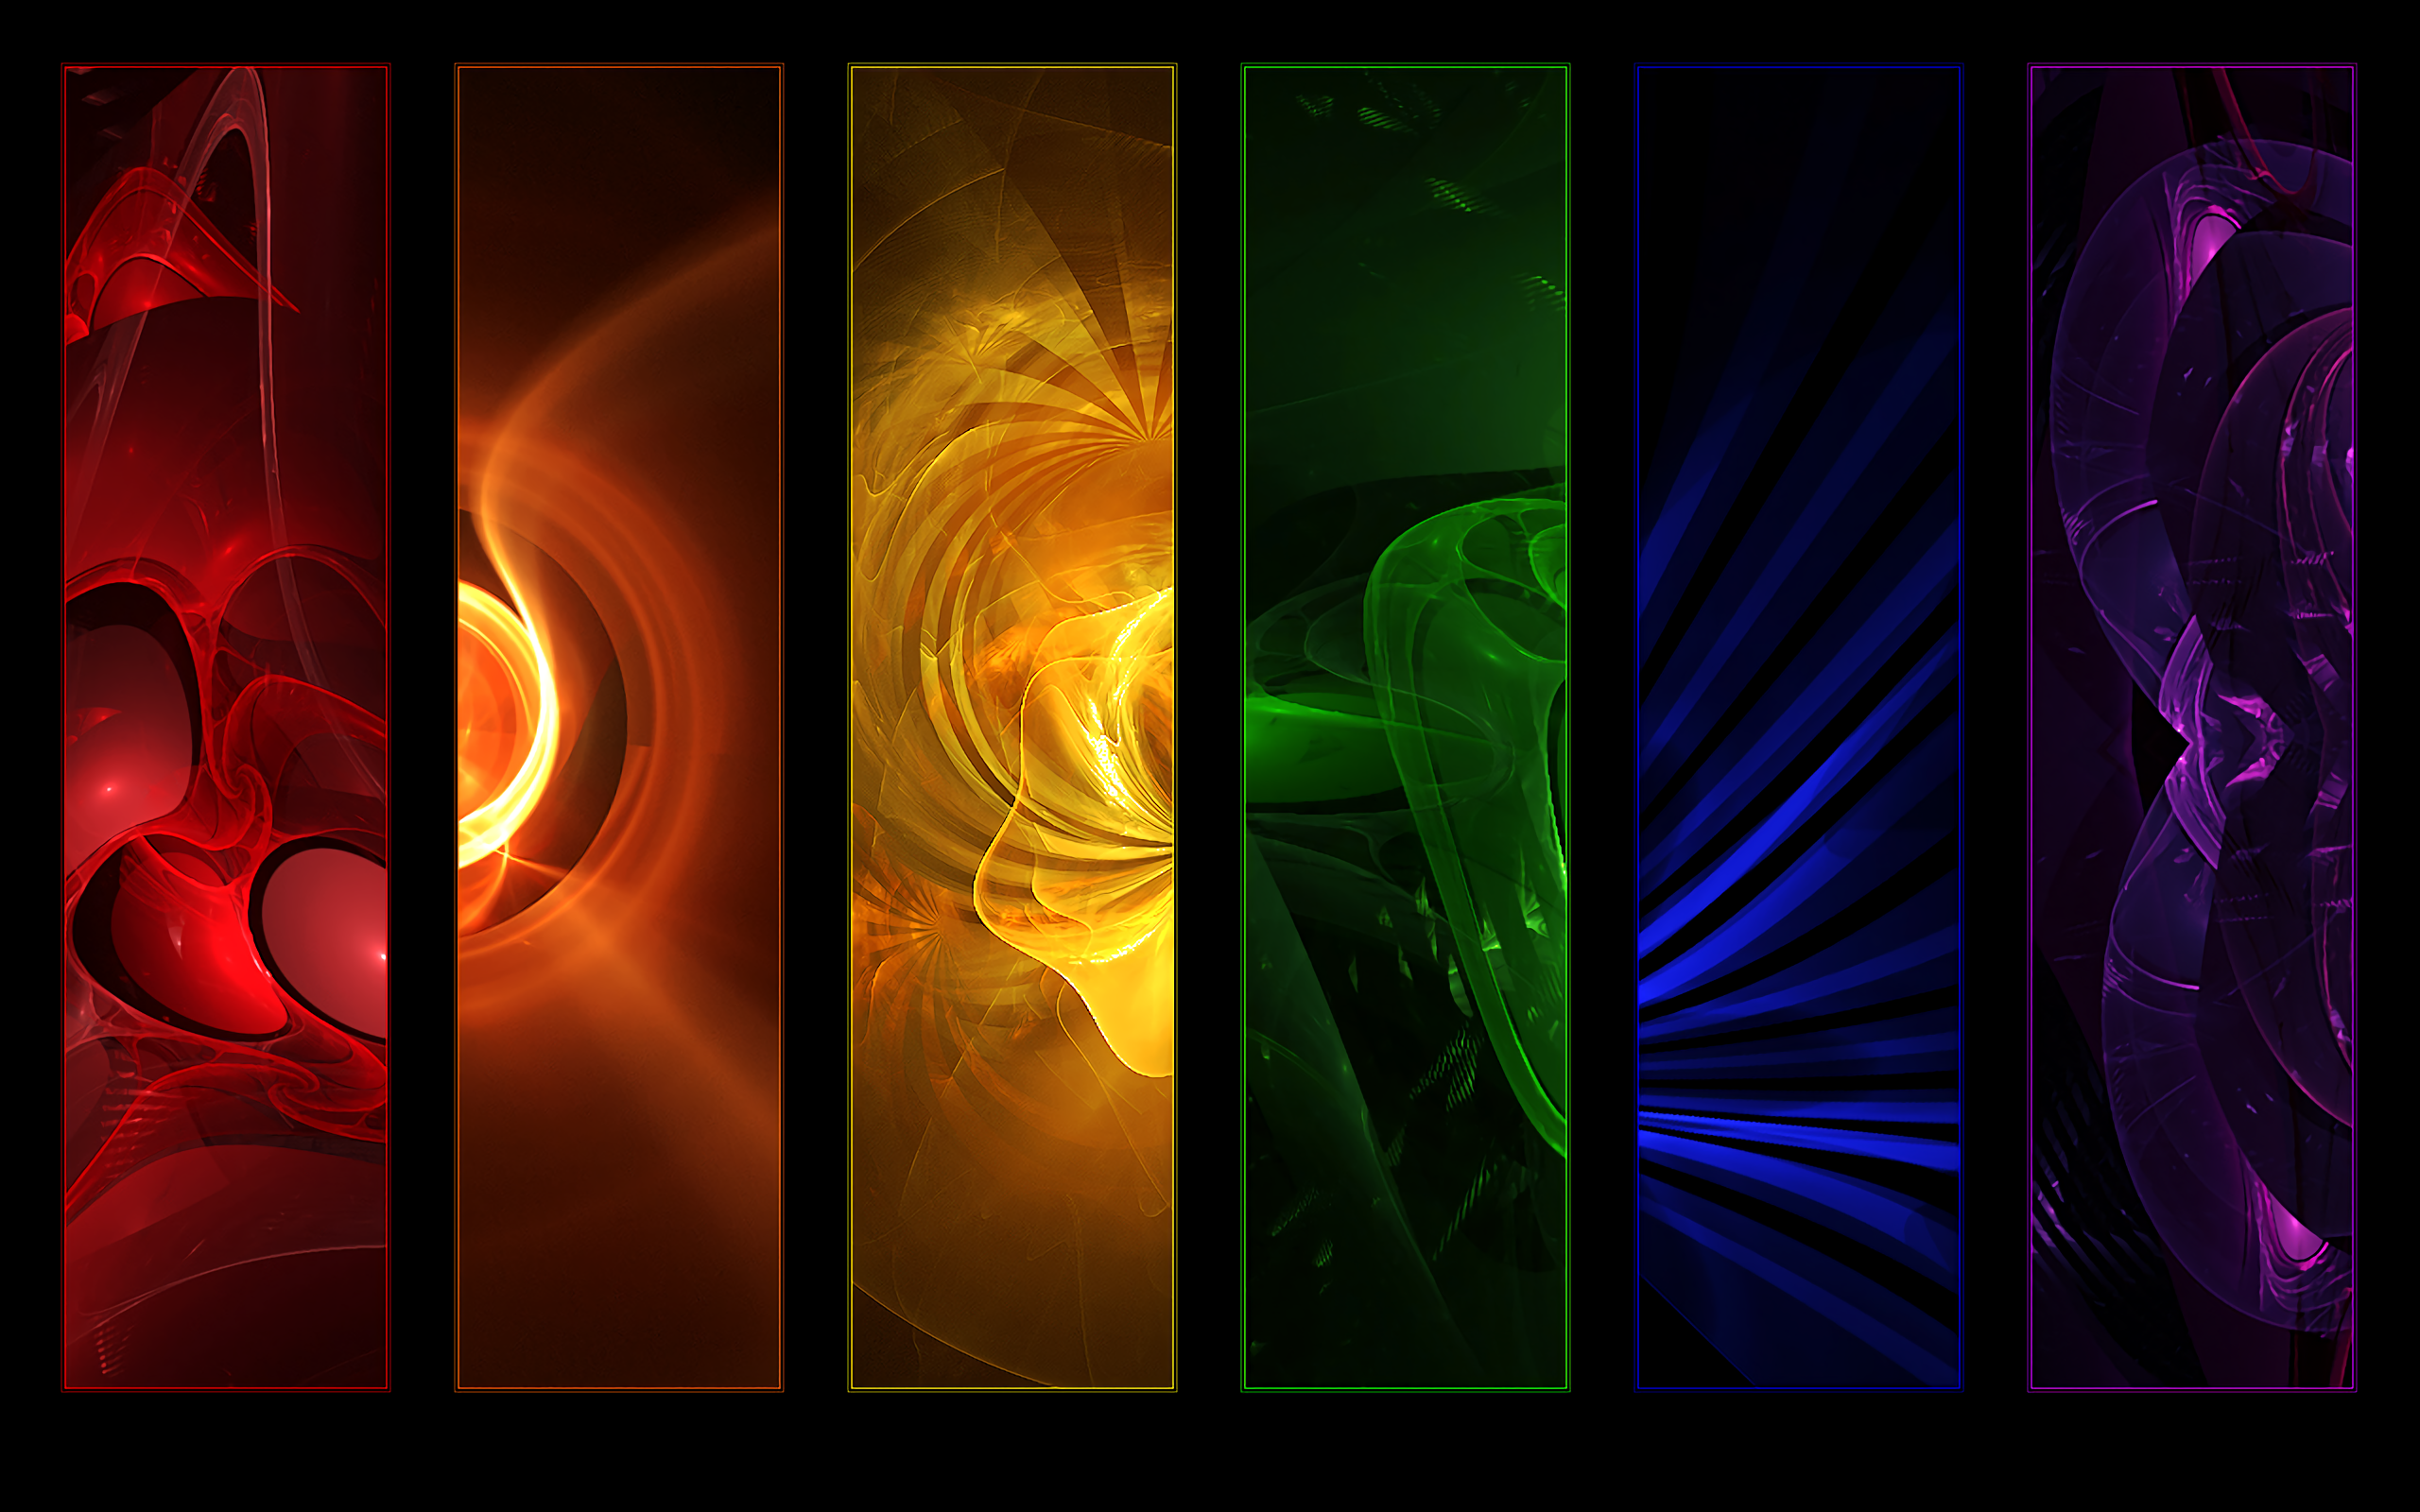 High Quality PC (Win10) HD Abstract Pics: BsnSCB Gallery